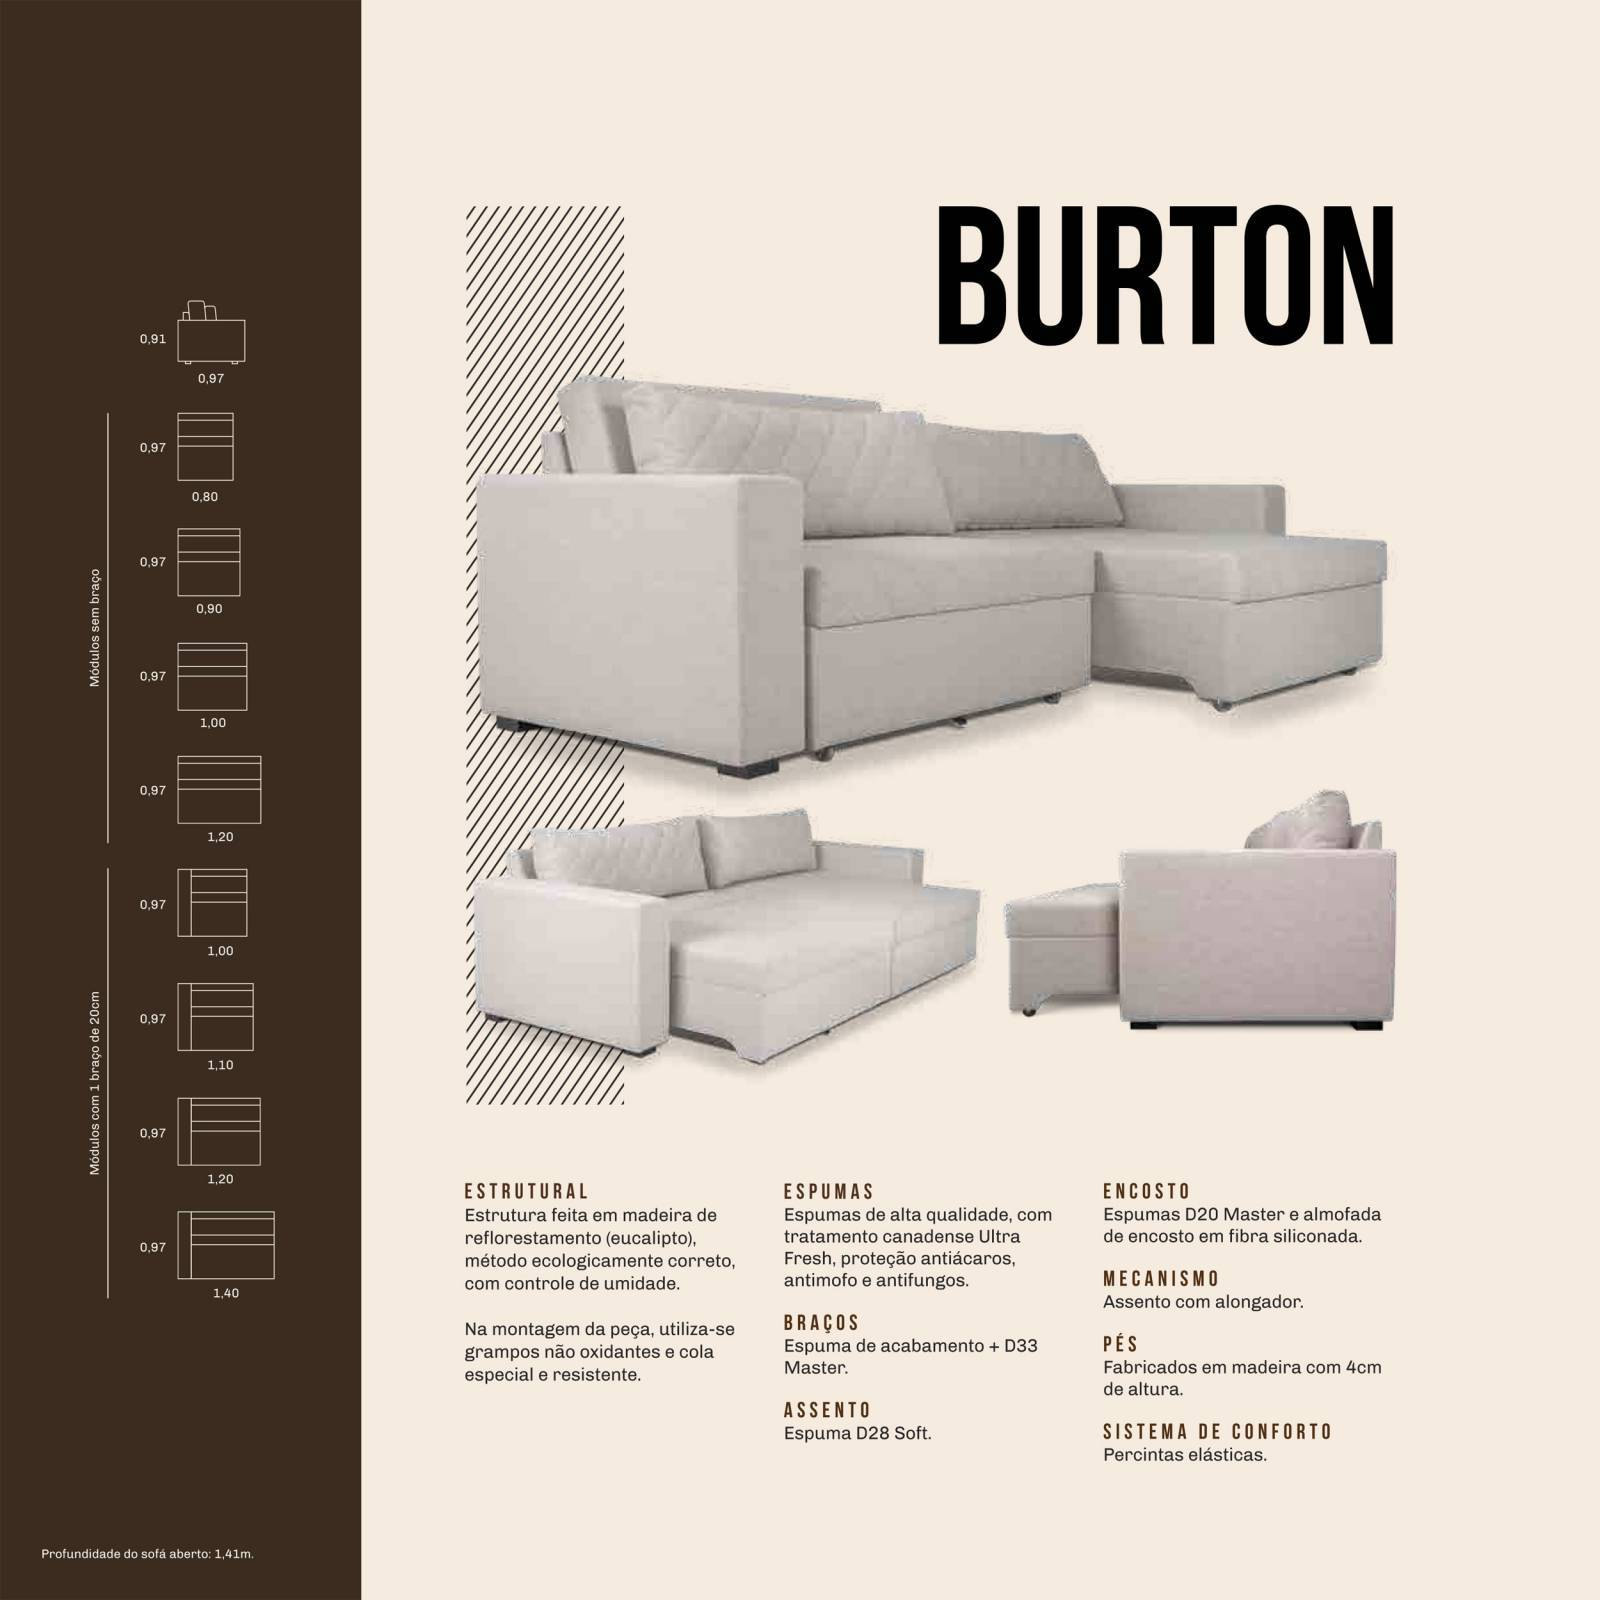 Estofado Burton Mannes - All Home